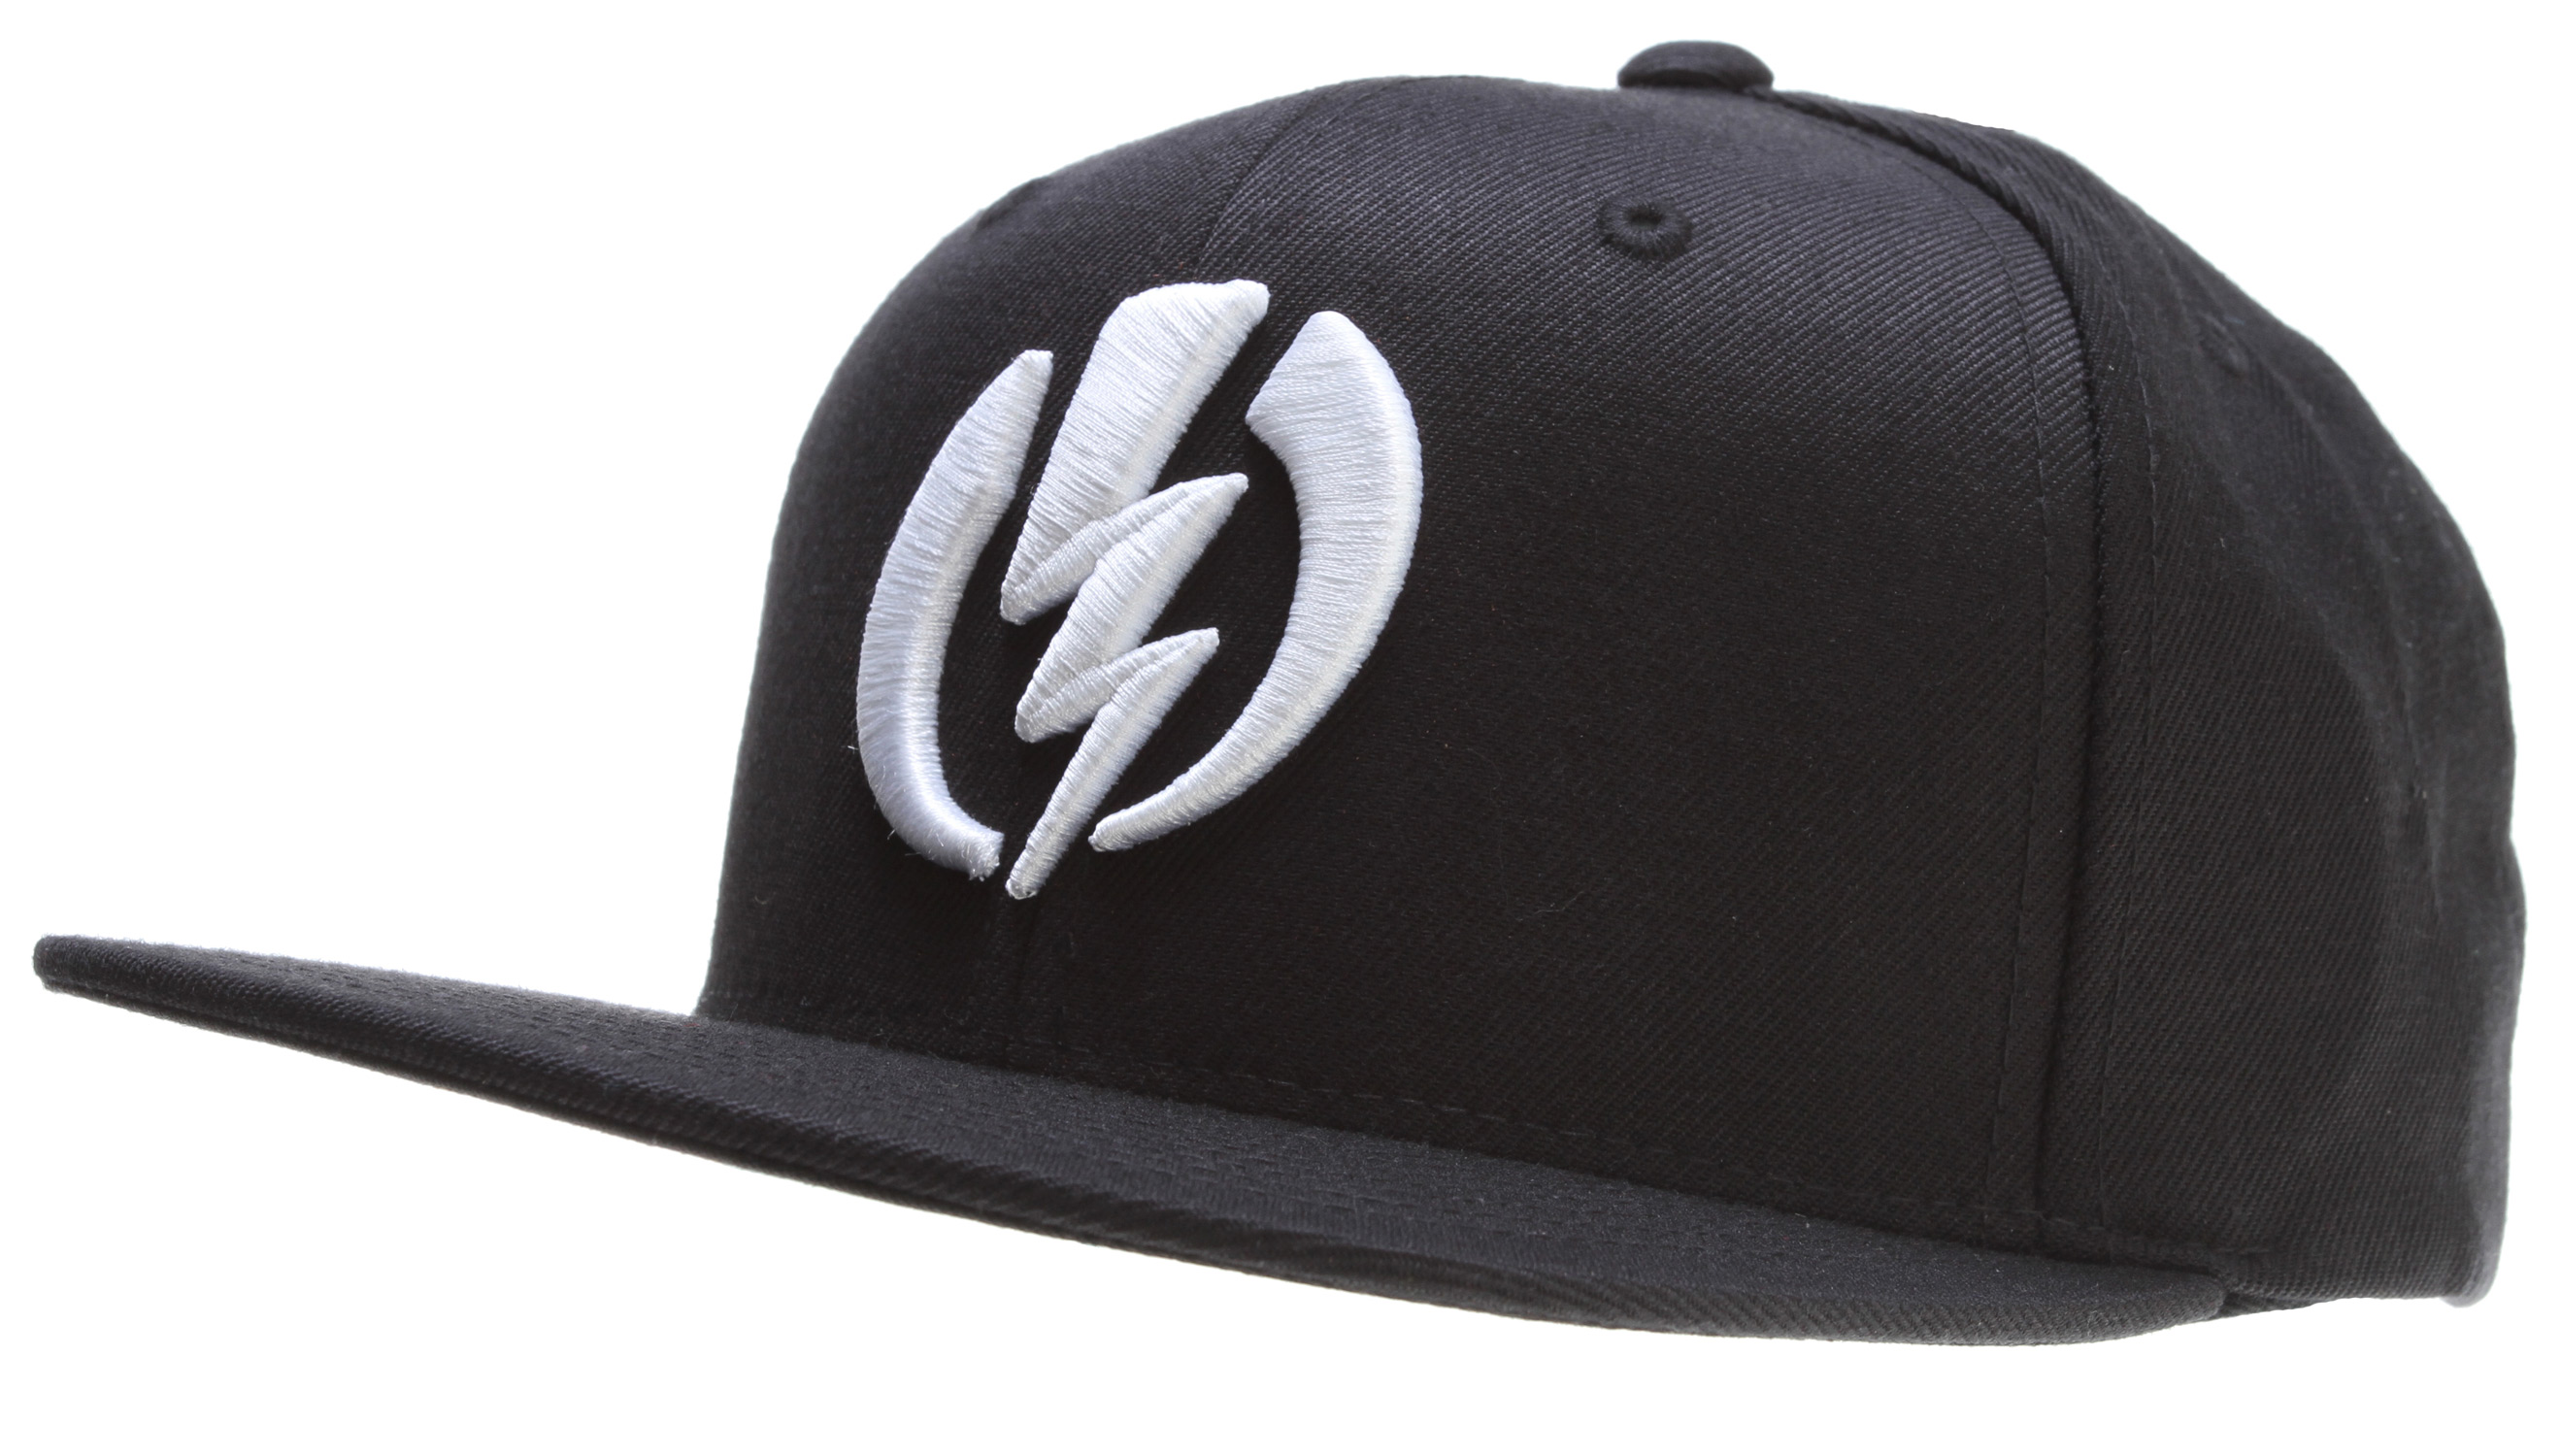 Key Features of the Electric Amp Cap: Snap Back High Raised Embroidery Flag Label 83% Acrylic / 15% Wool / 2% P.U - $16.95